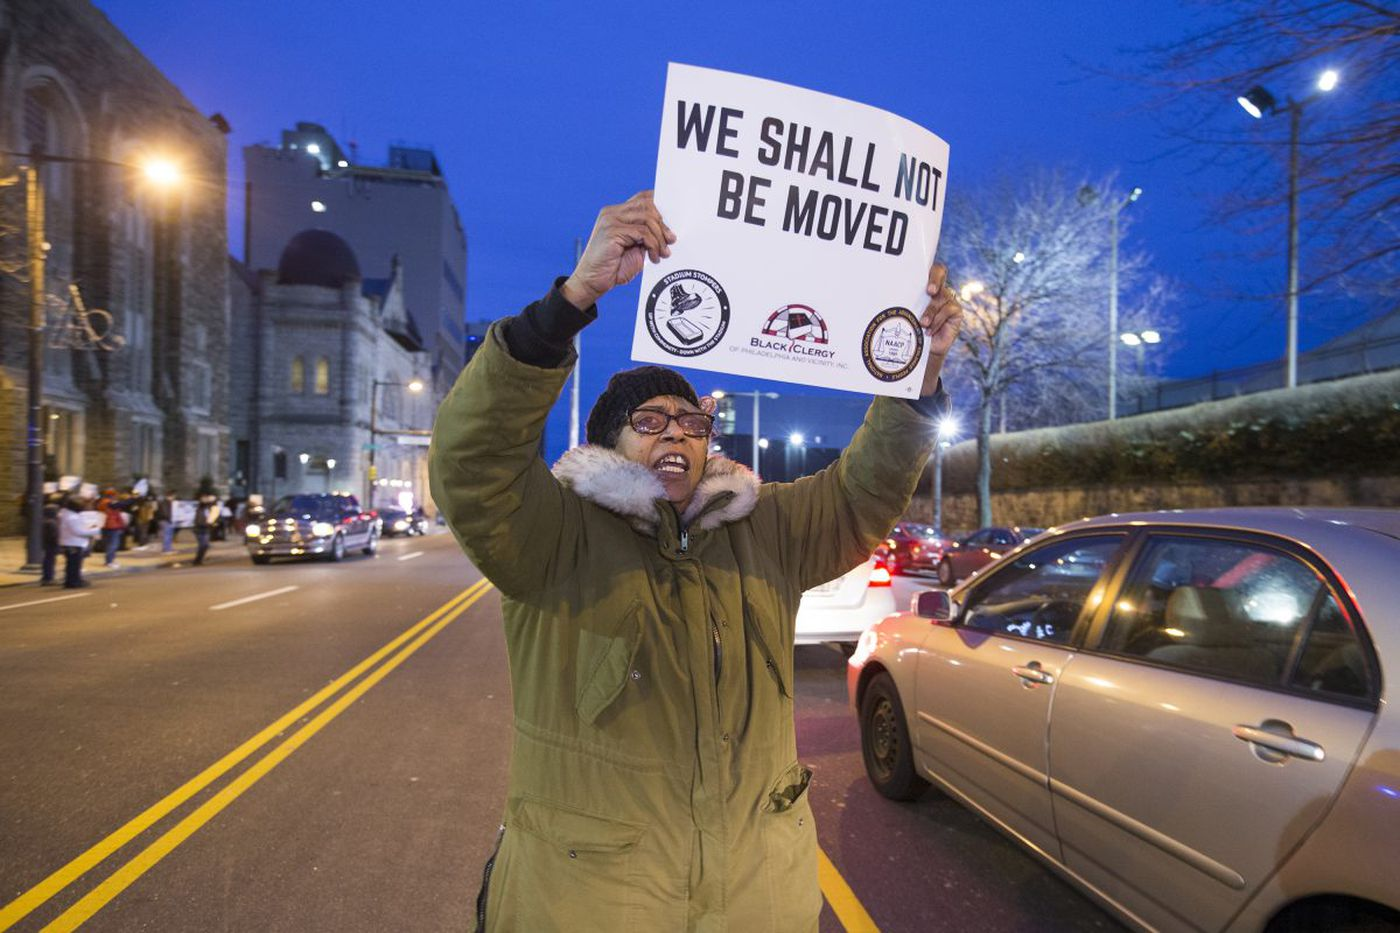 Temple's football stadium town hall ended abruptly in boos. What happens next?